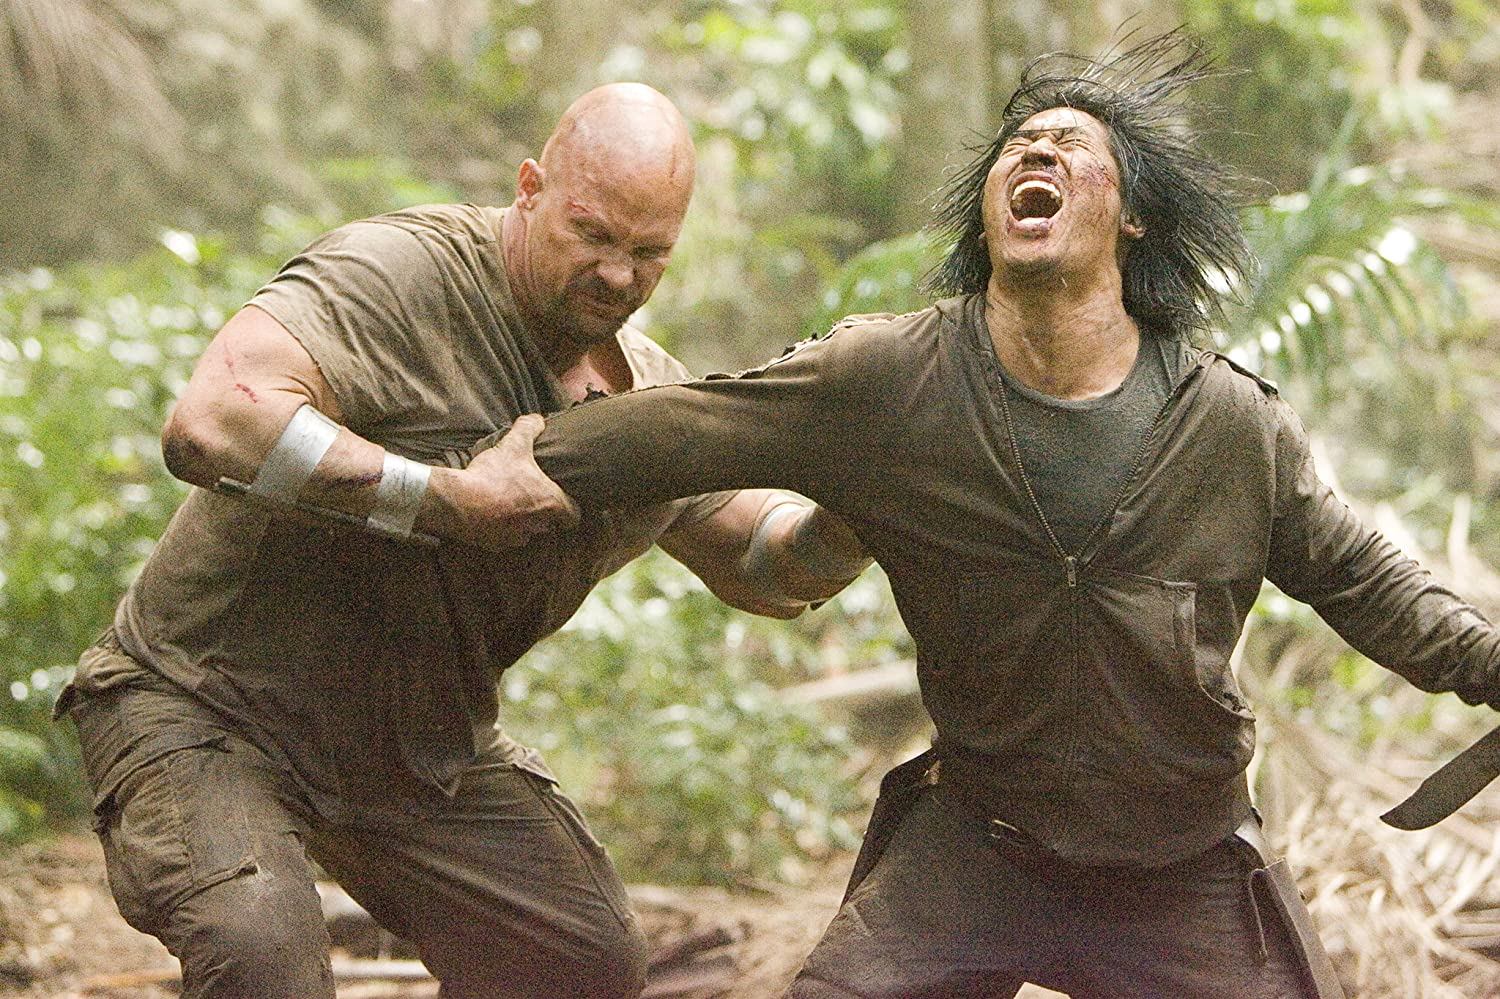 Steve Austin and Masa Yamaguchi in The Condemned (2007)